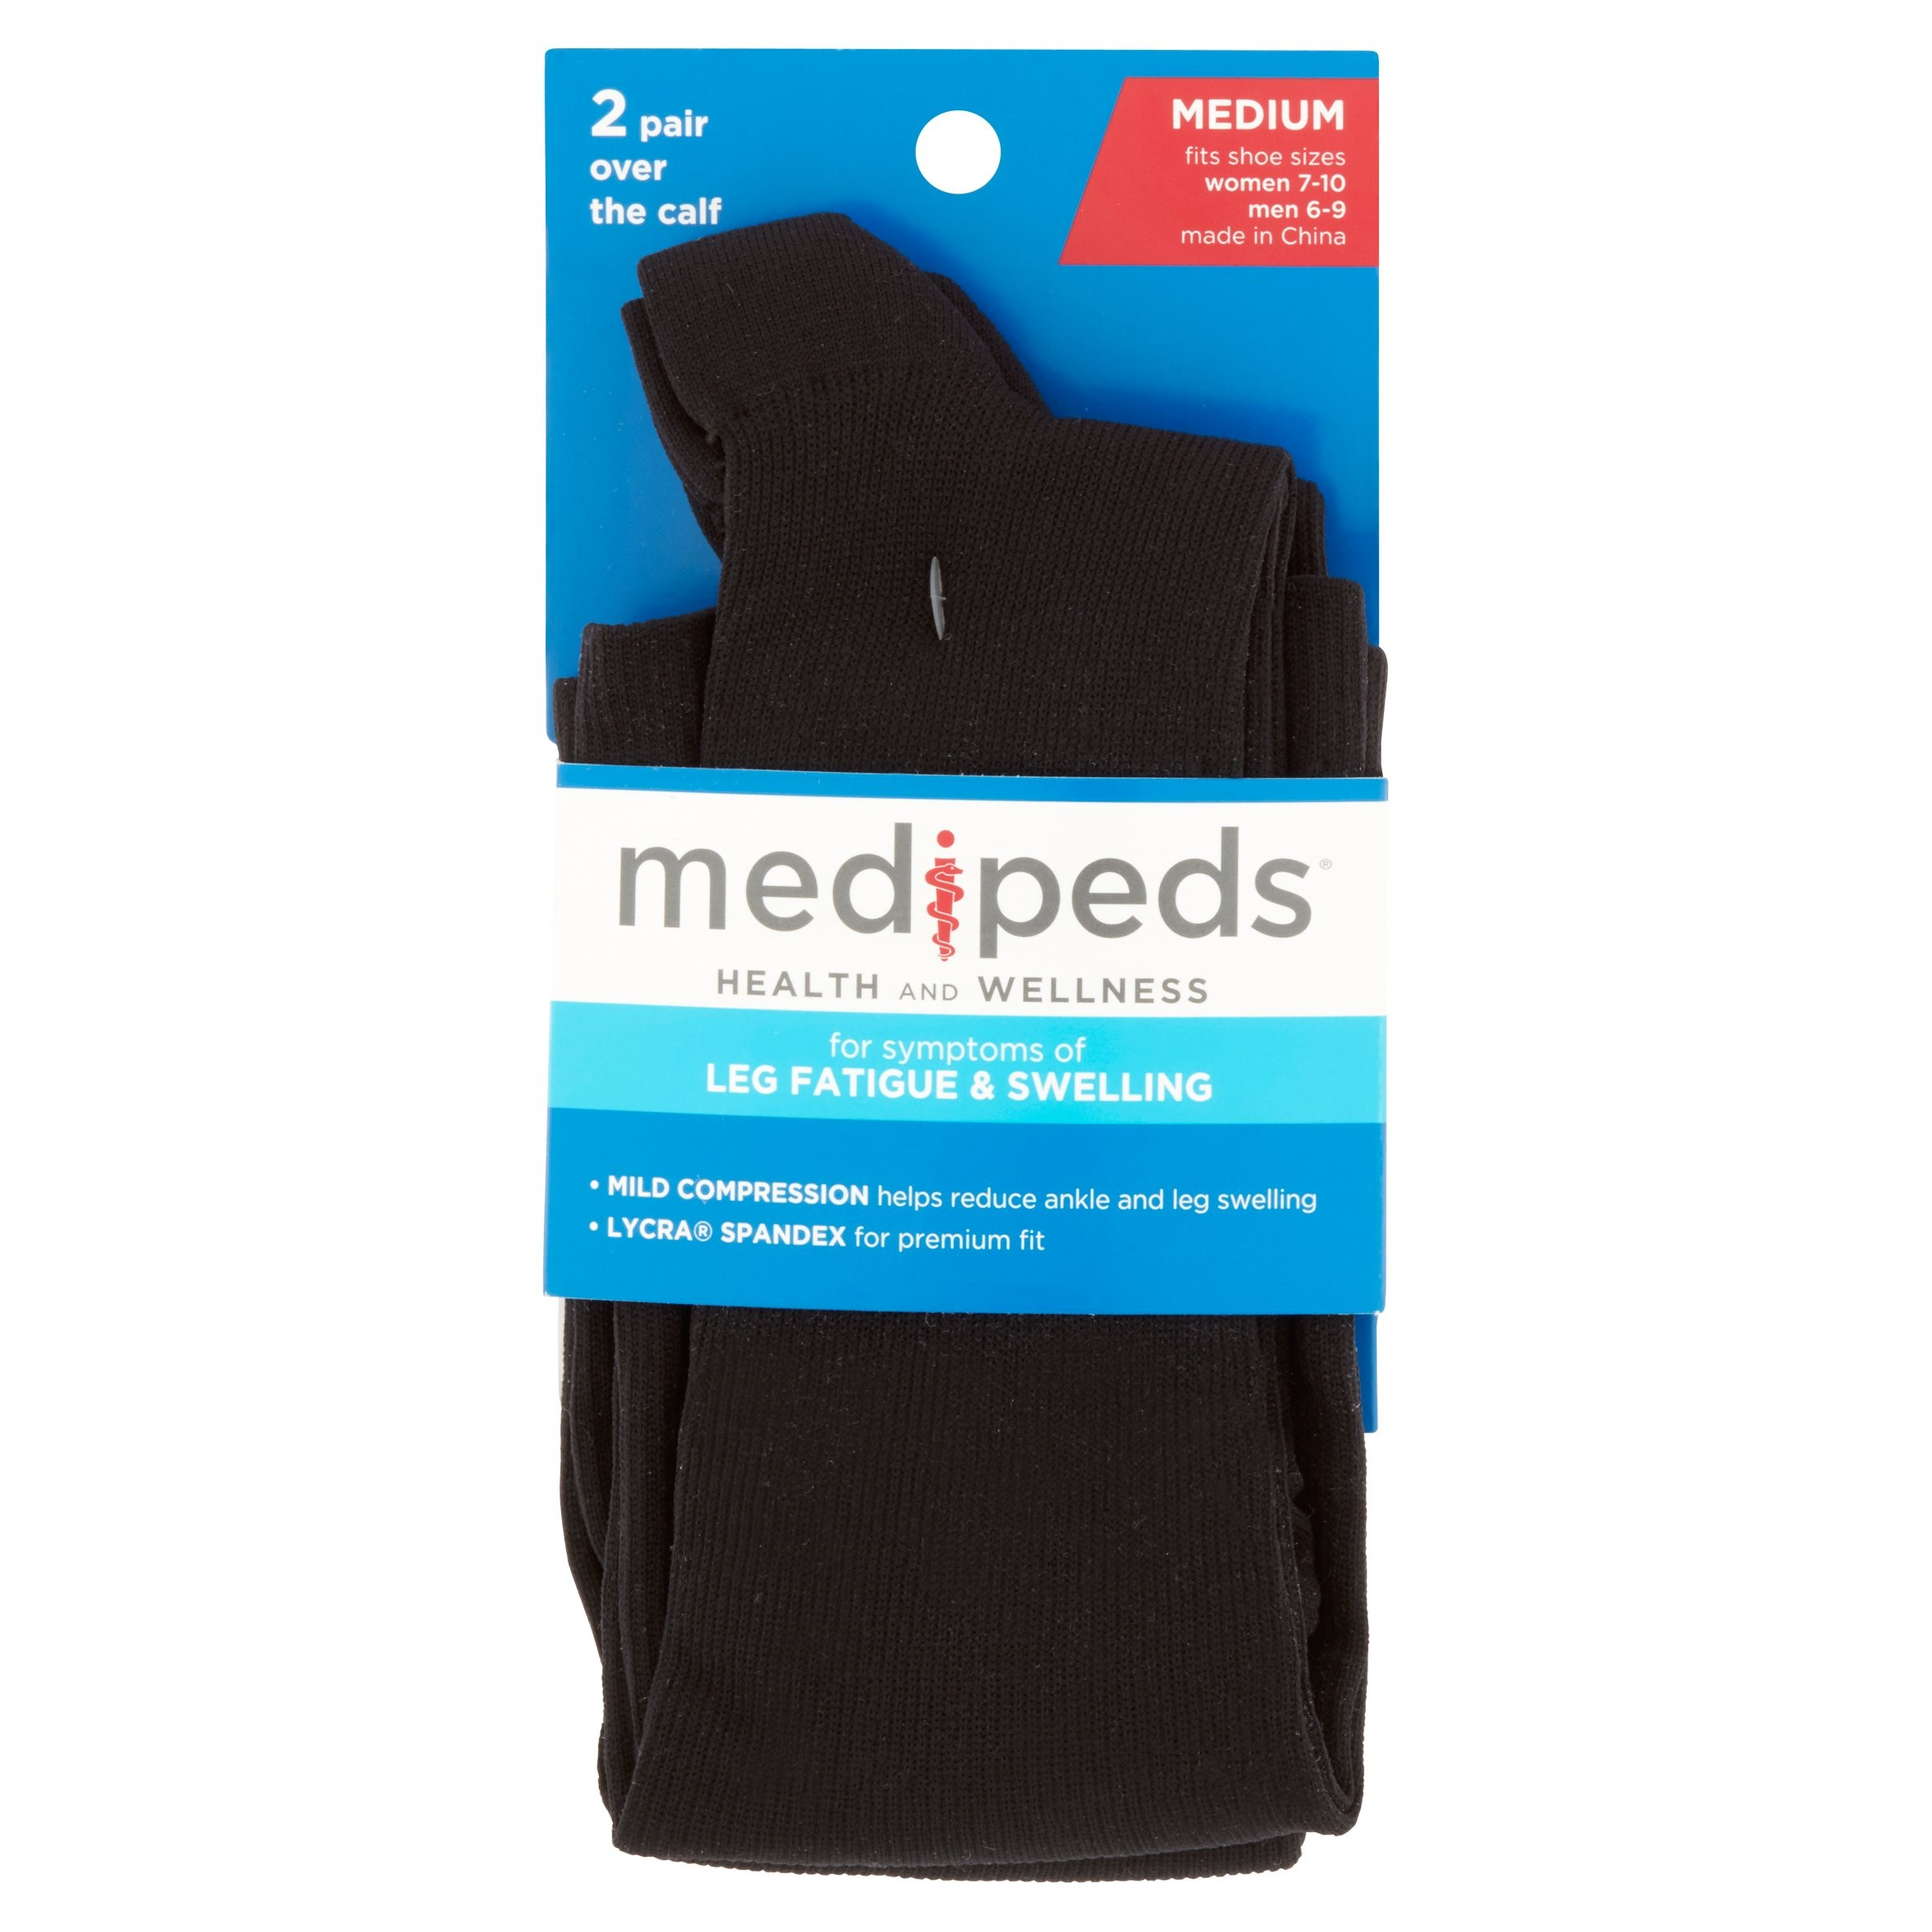 MediPeds Over the Calf Compression Socks, Medium, 2 Ct